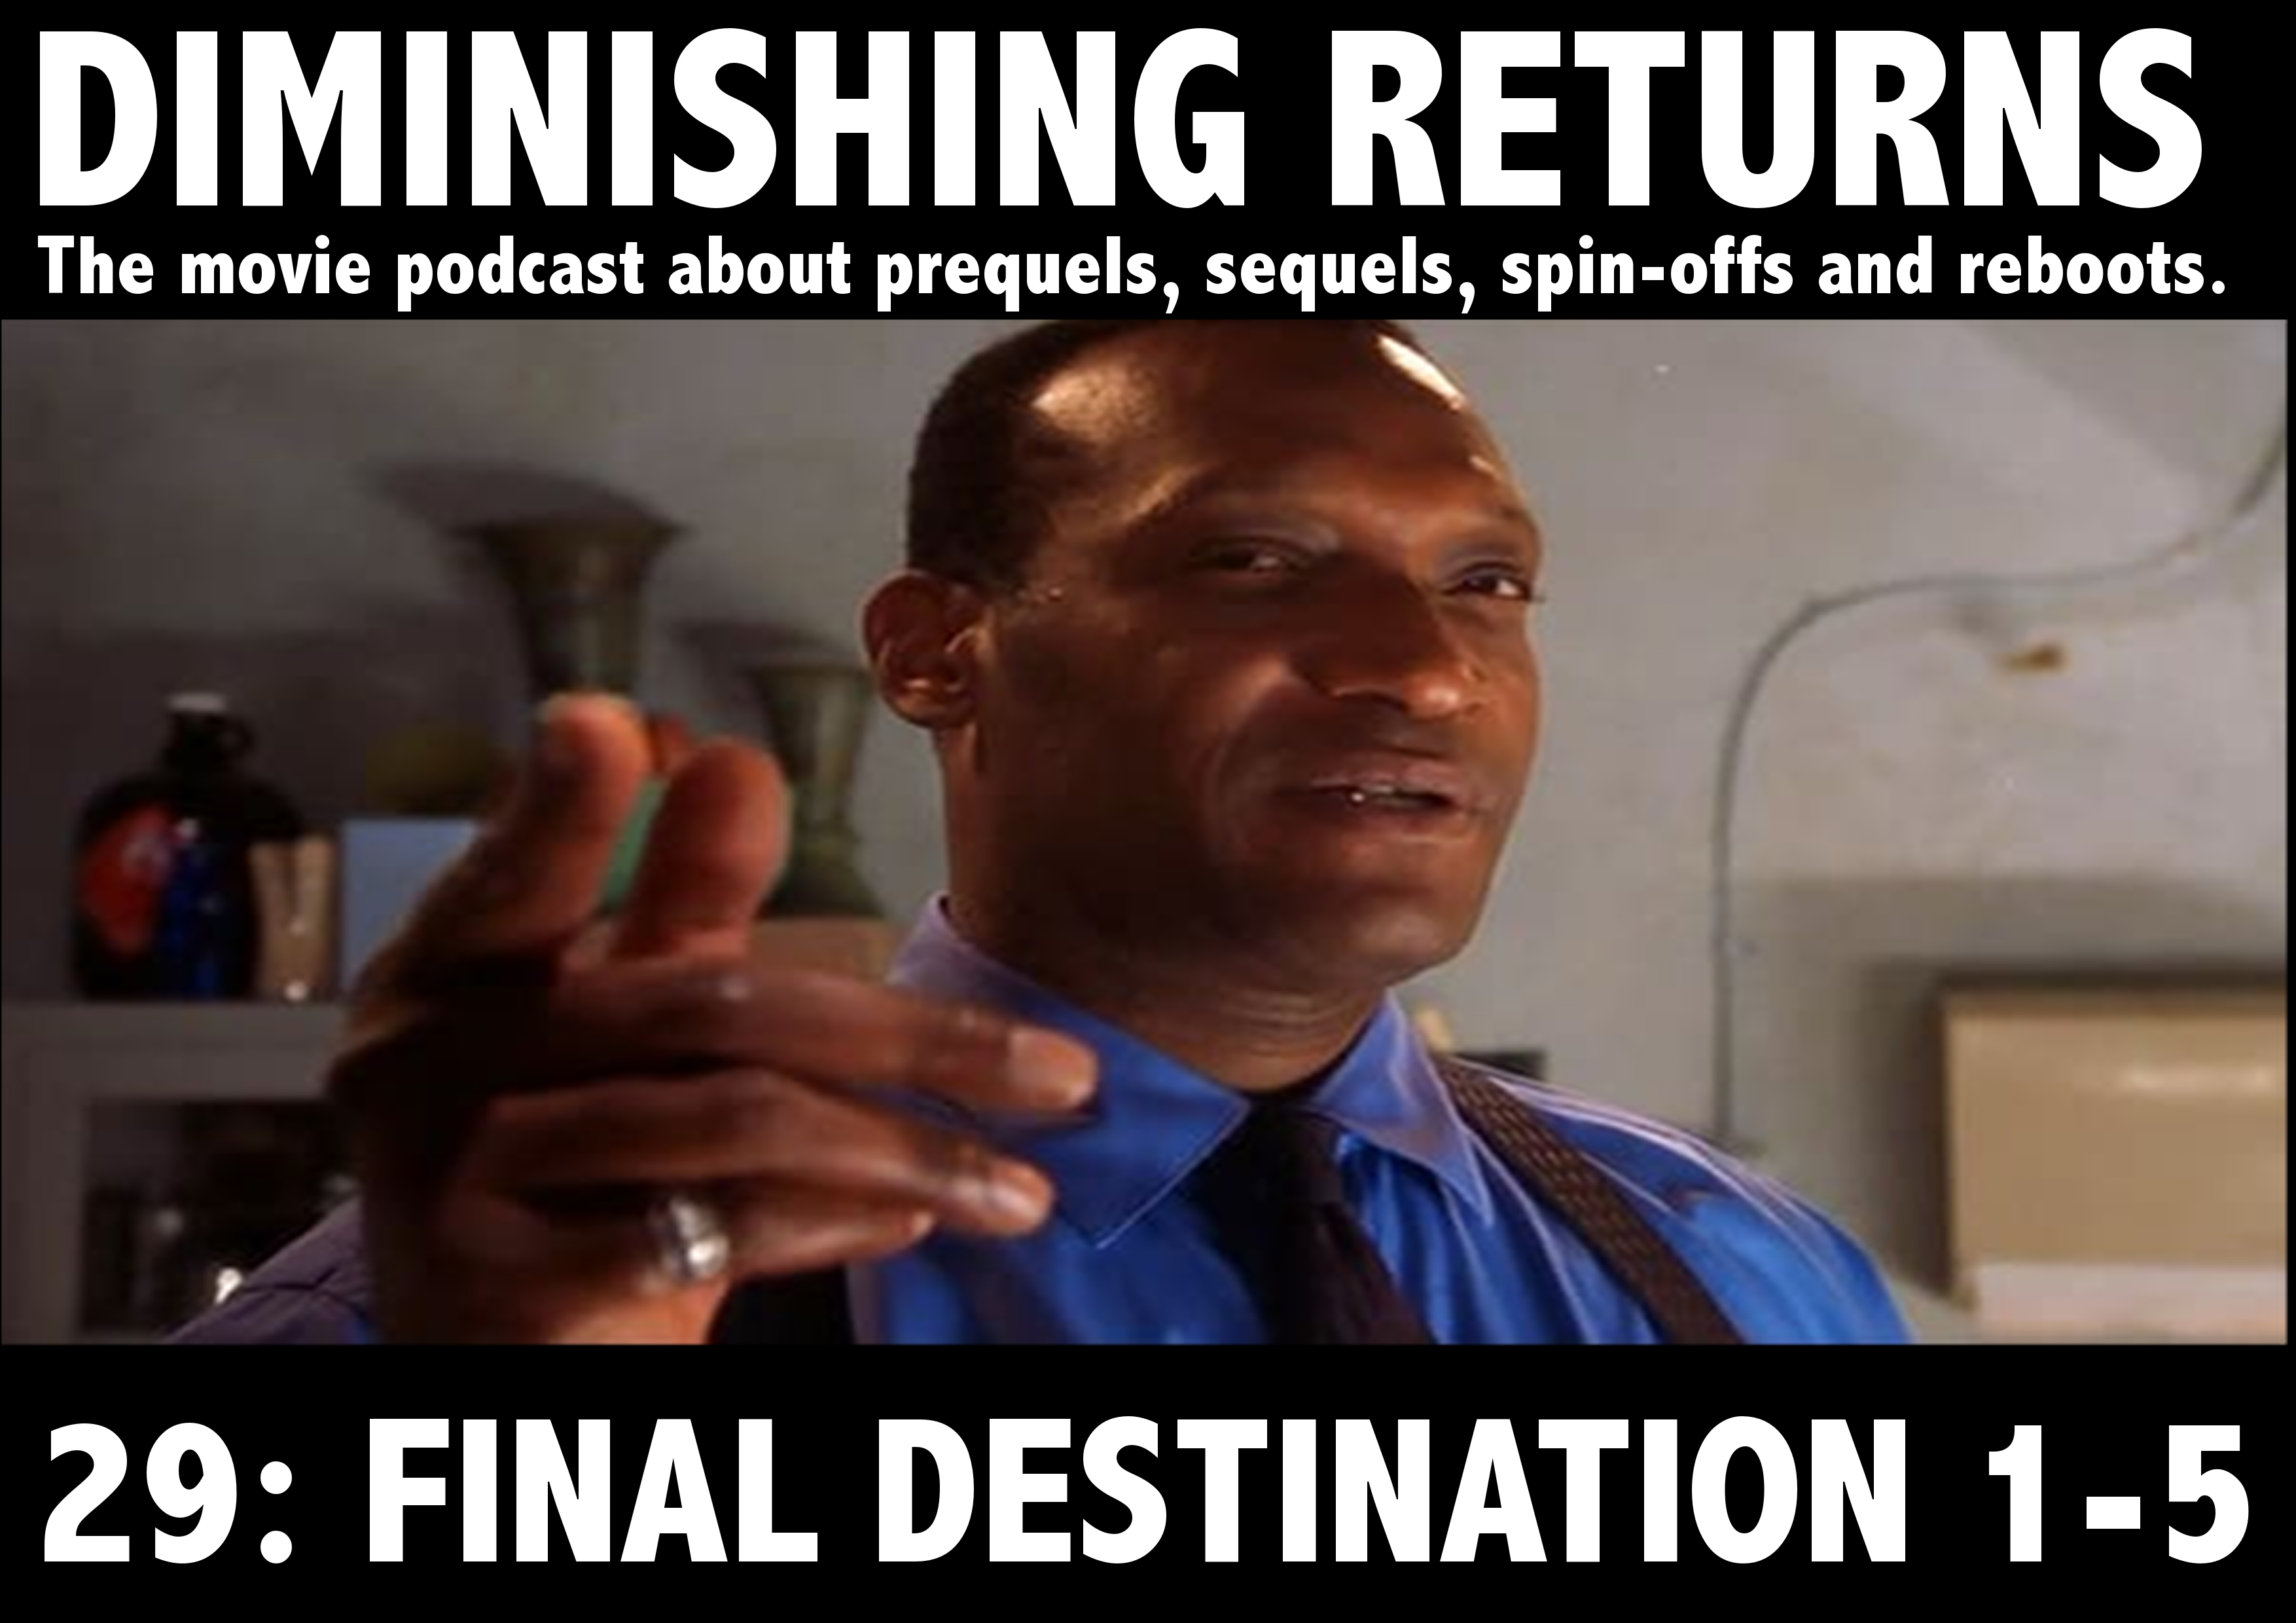 Diminishing Returns Podcast Episode 29: Final Destination 1-5